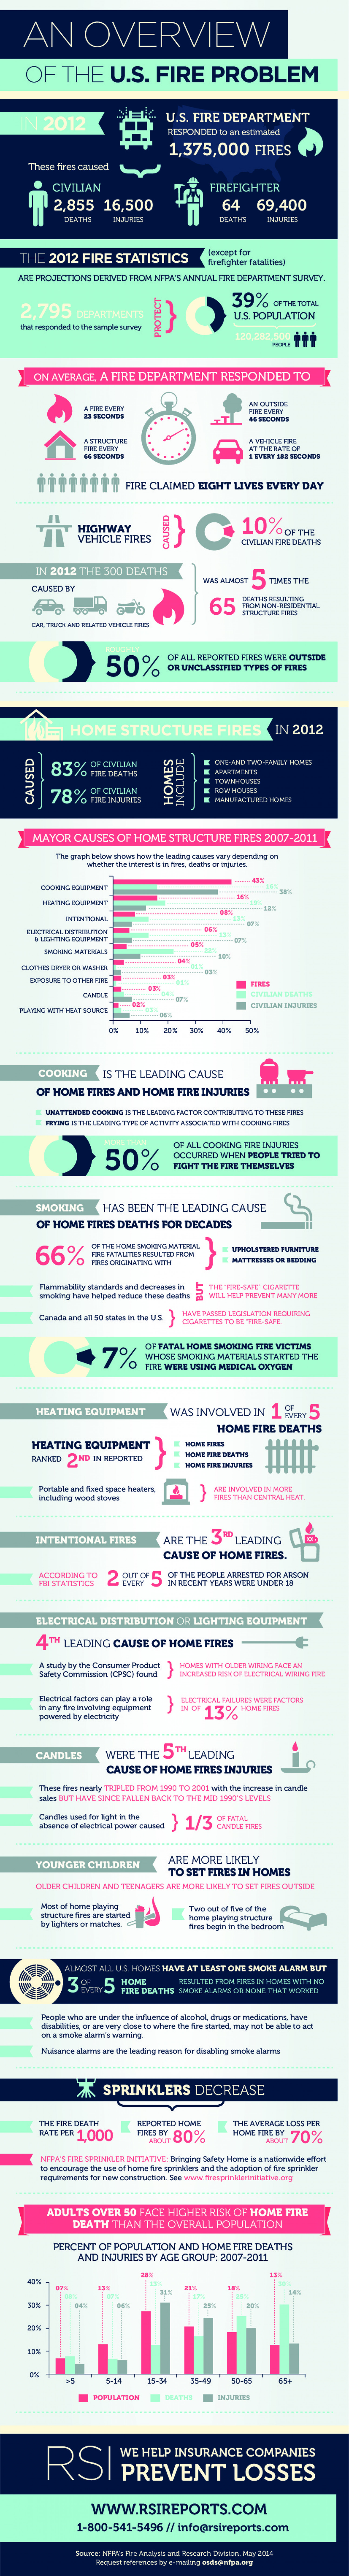 AN OVERVIEW OF THE U.S. FIRE PROBLEM Infographic